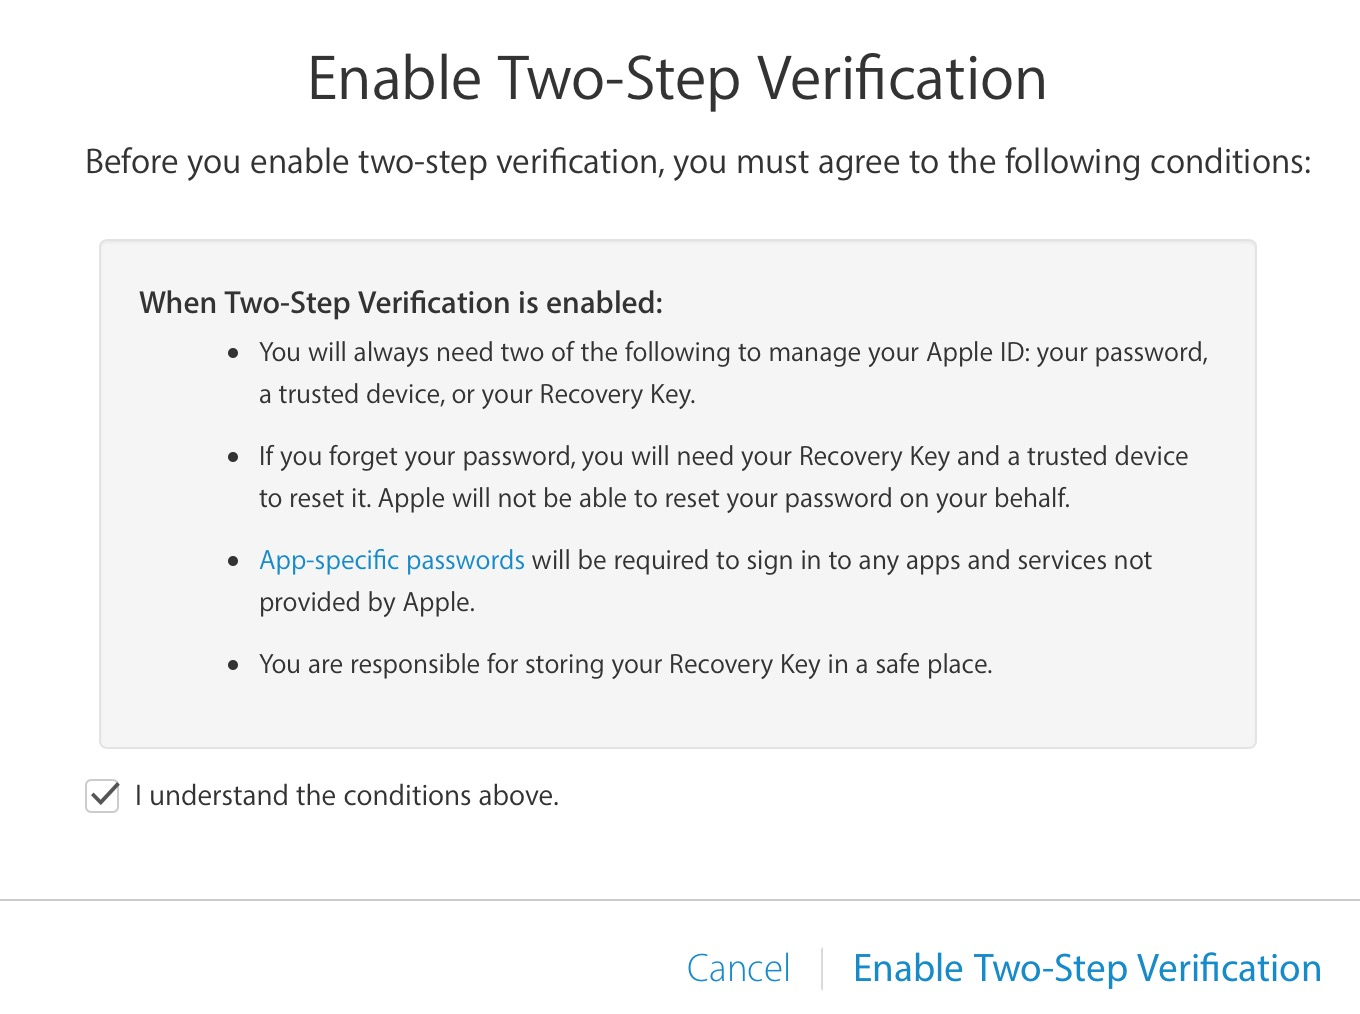 two step verification understand conditions